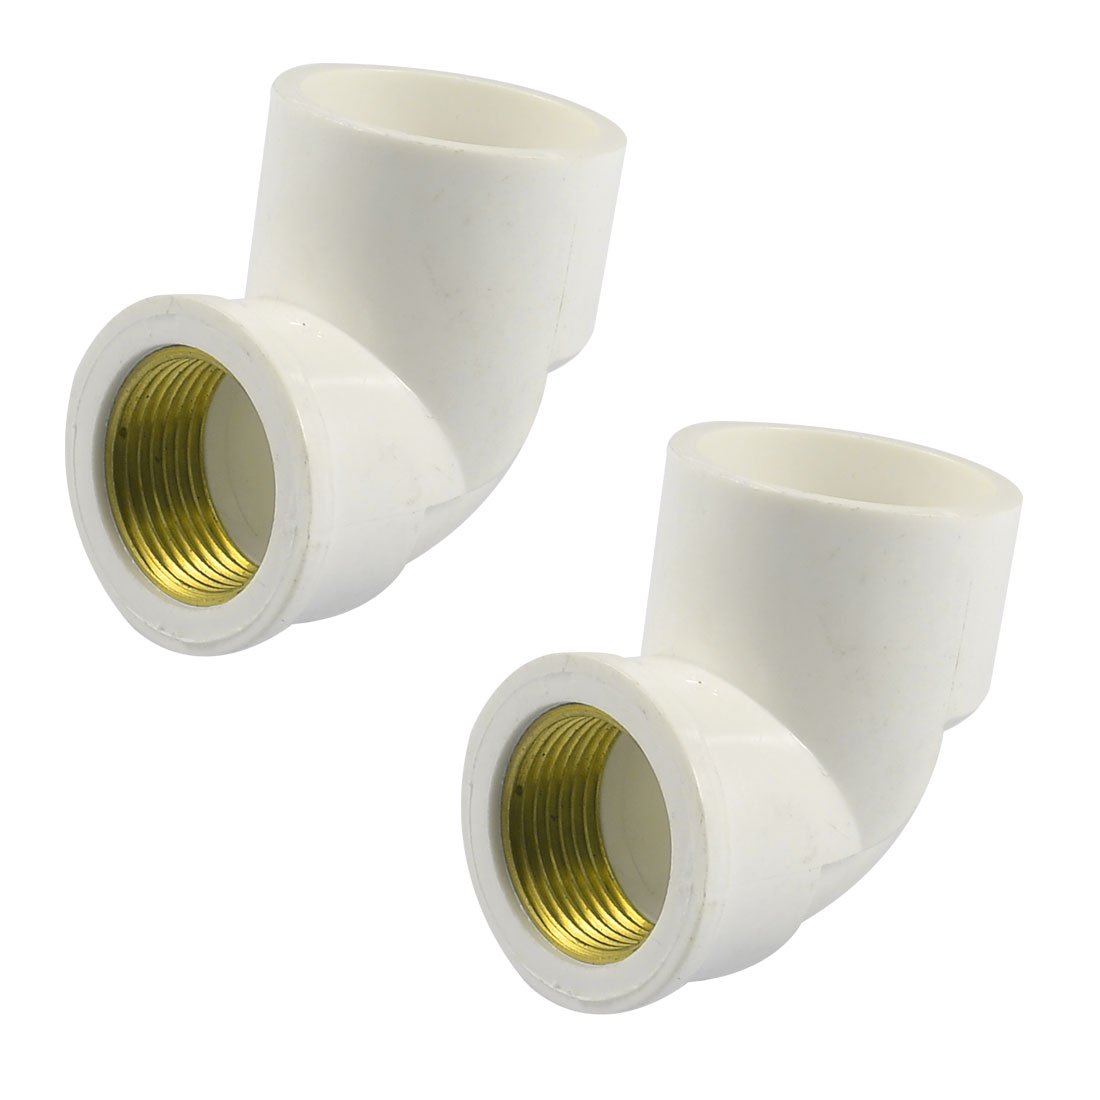 "3/4"" Brass Female Thread x 32mm PVC Slip Right Angle Pipe Elbow Coupler White 2 Pcs"